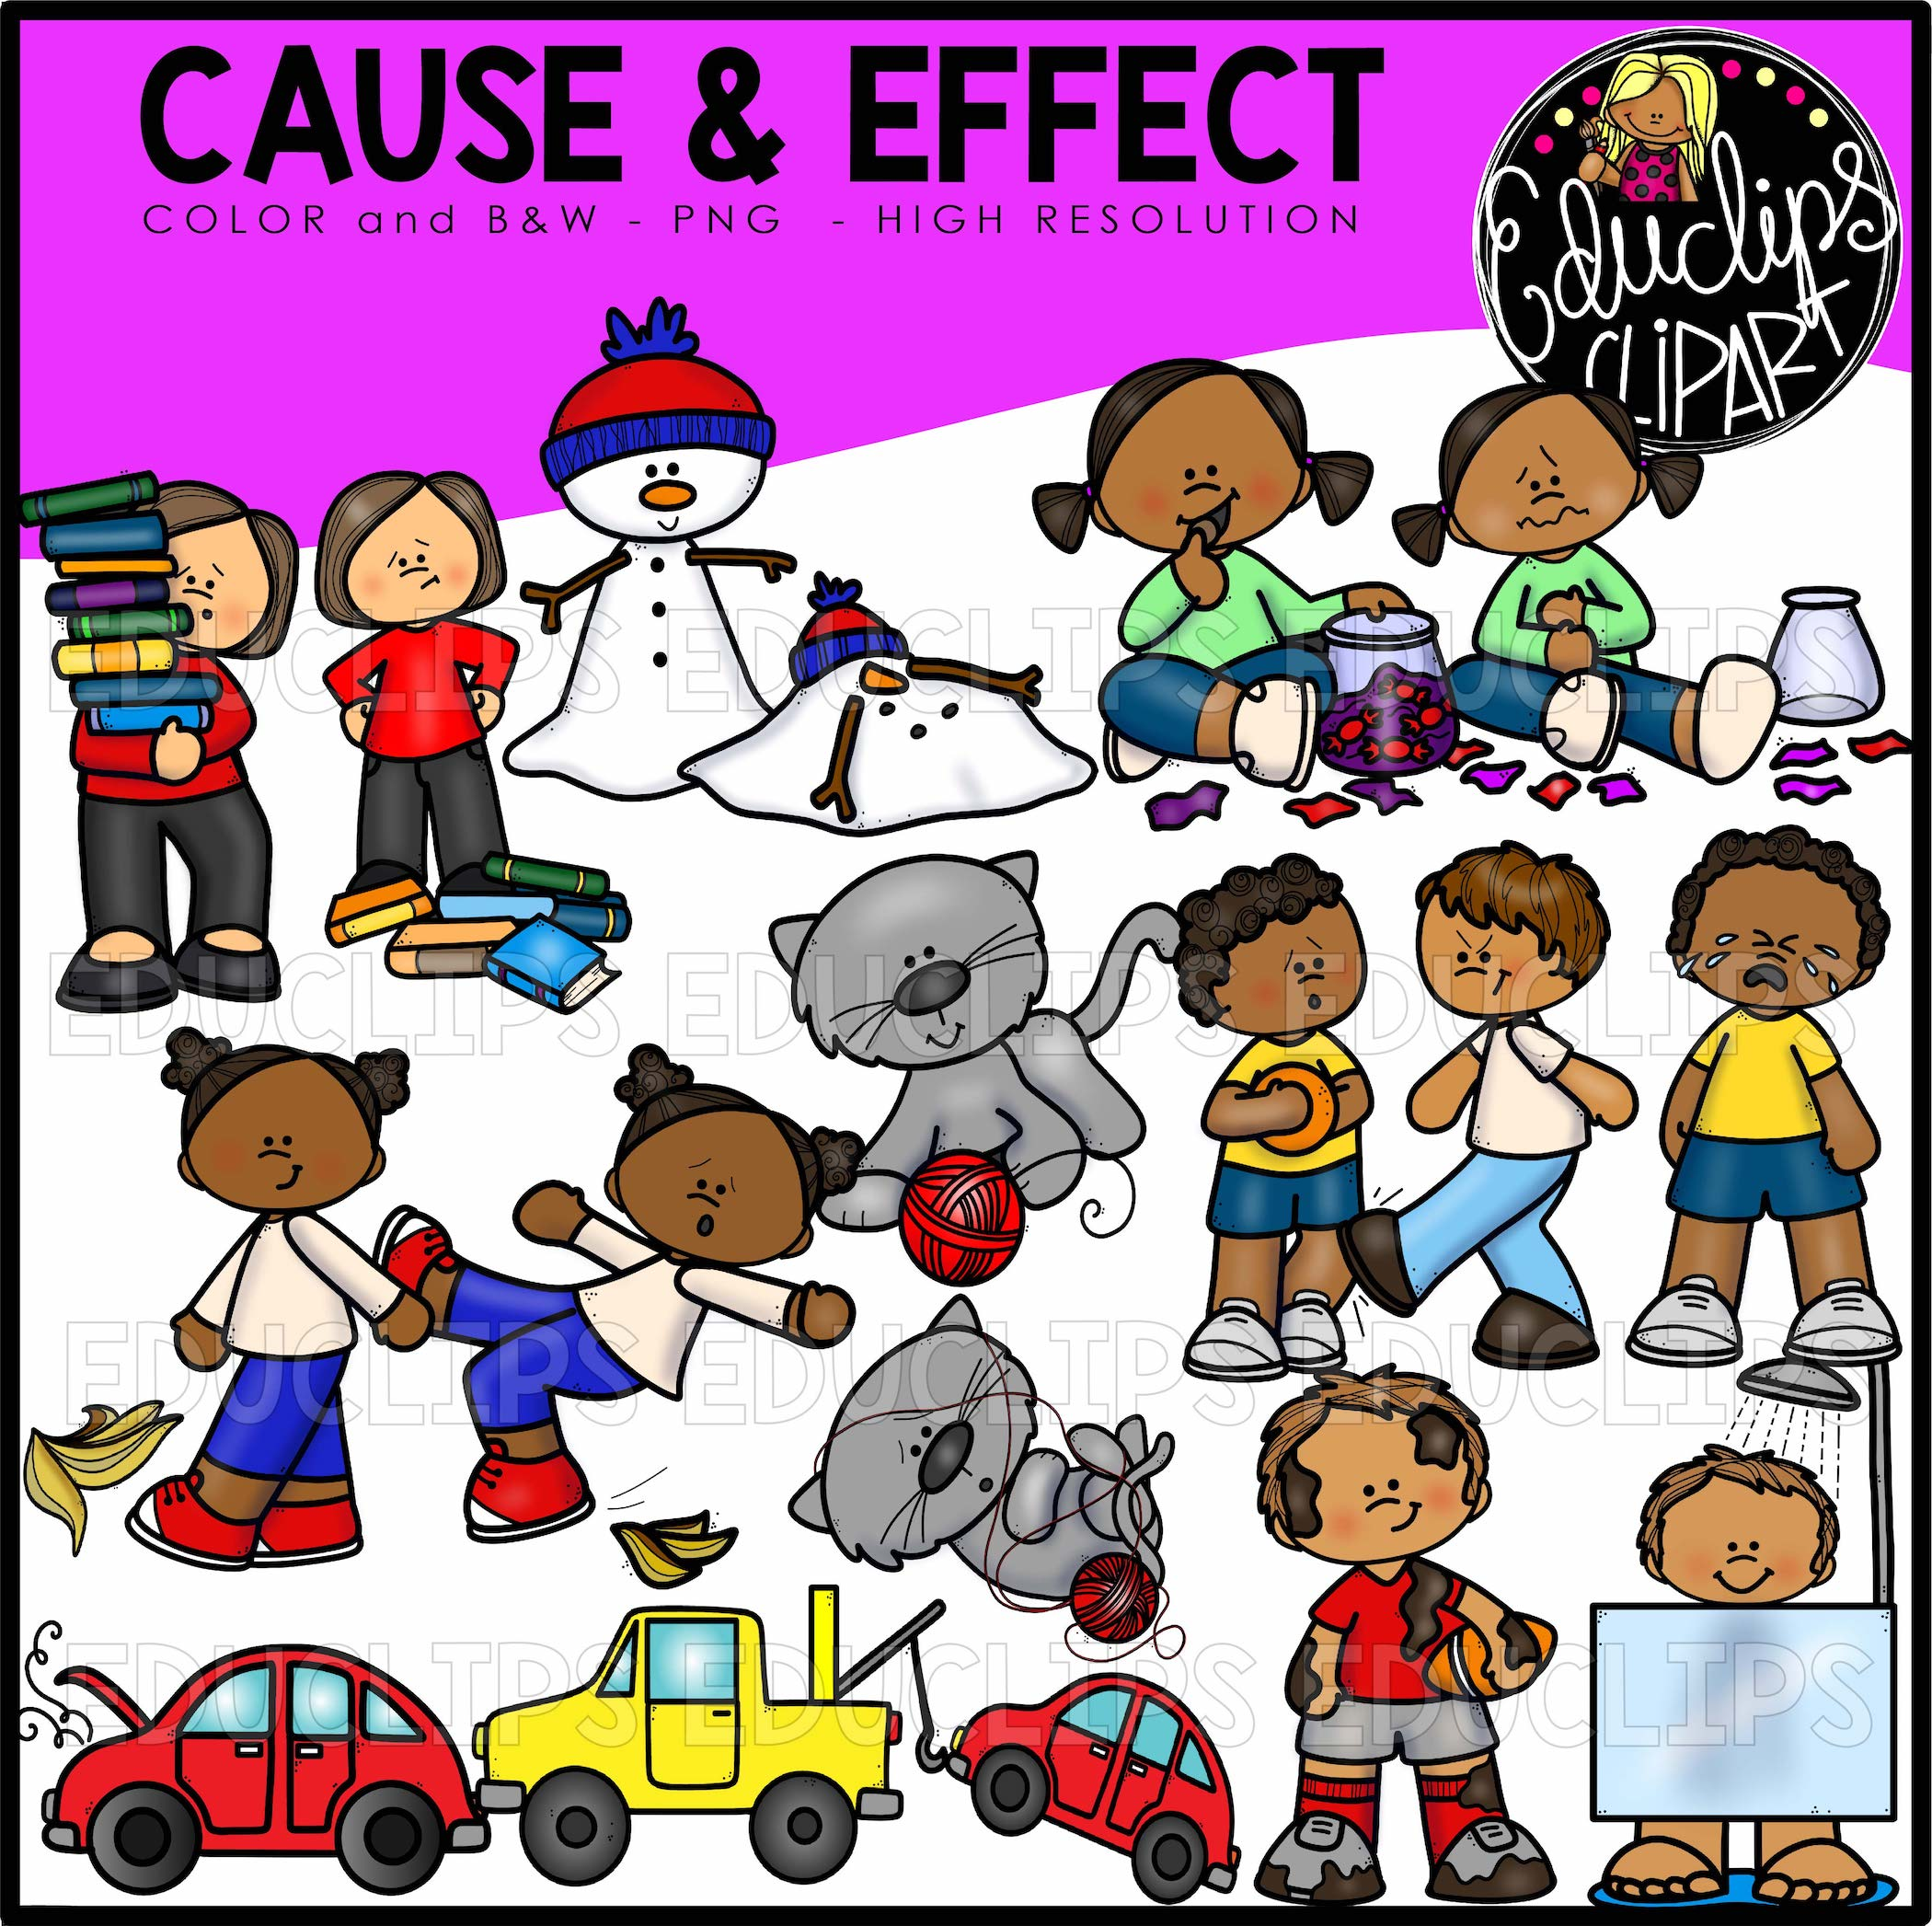 cause and effect art